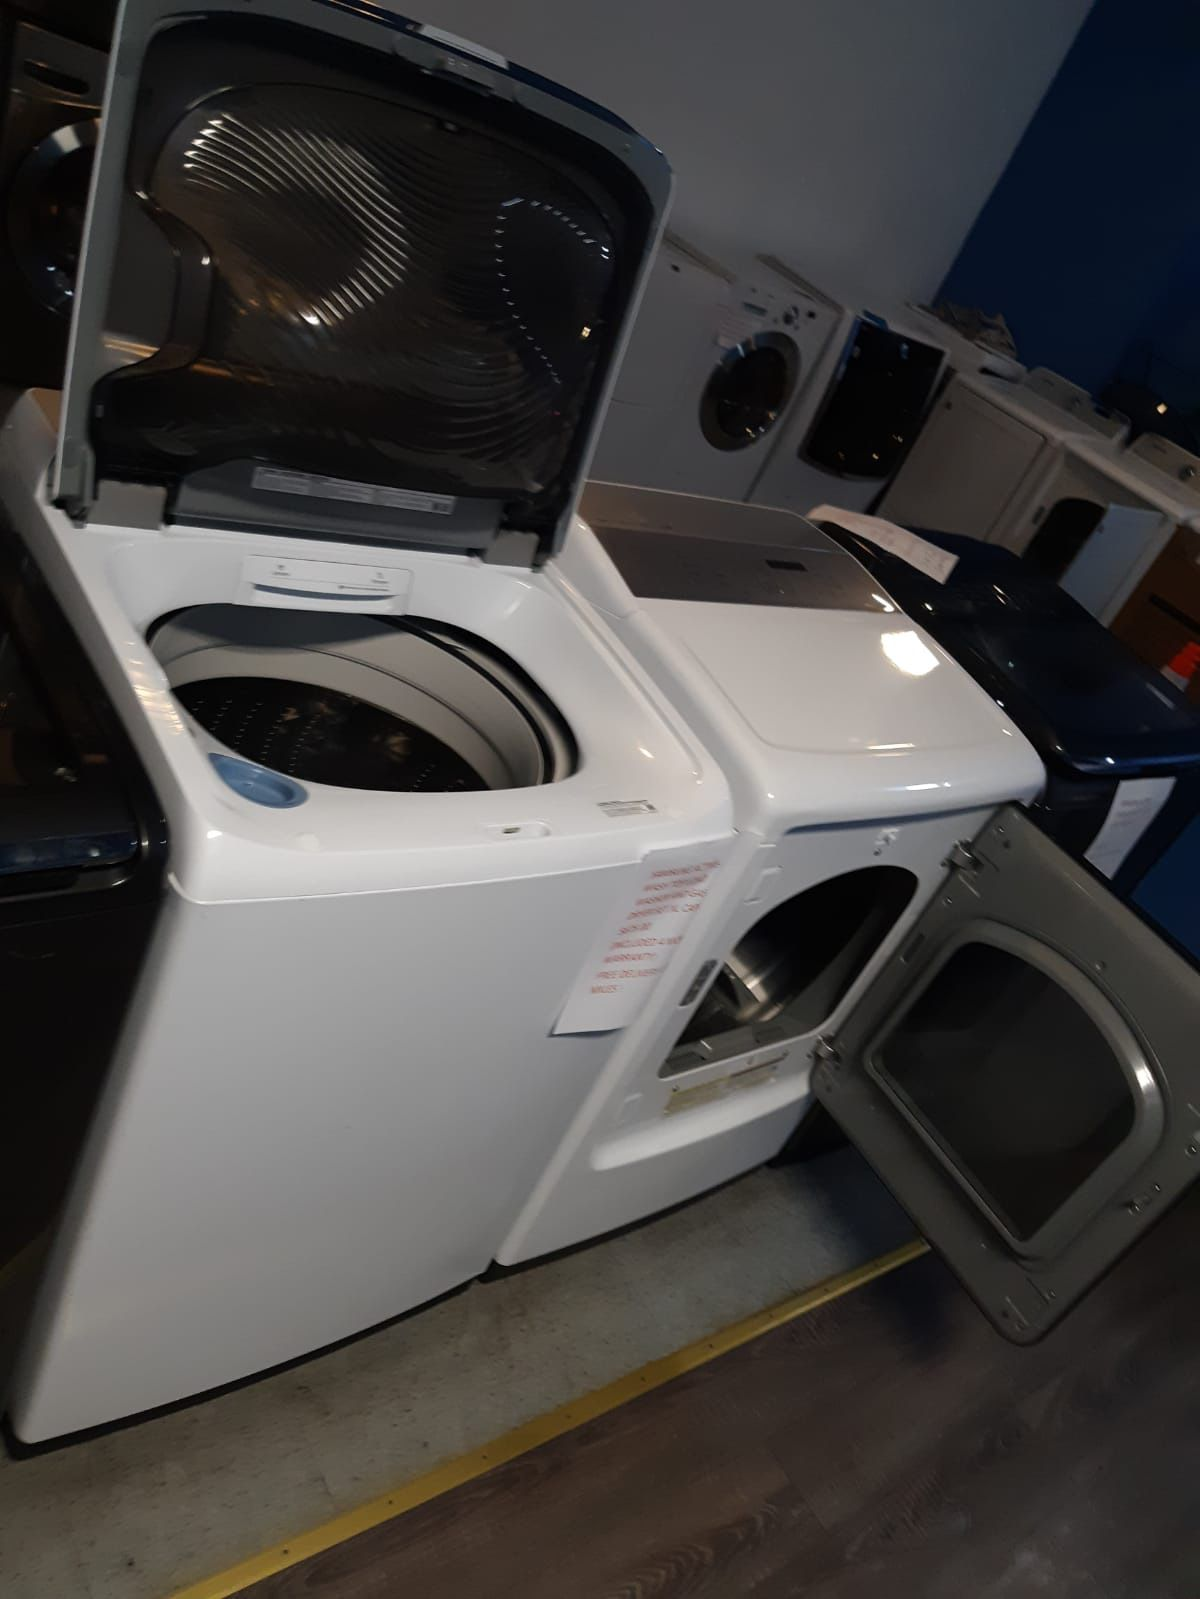 SAMSUNG ACTIVE-WASH TOP LOAD WASHER AND GAS DRYER SET $650.00 IN EXELENT CONDITION